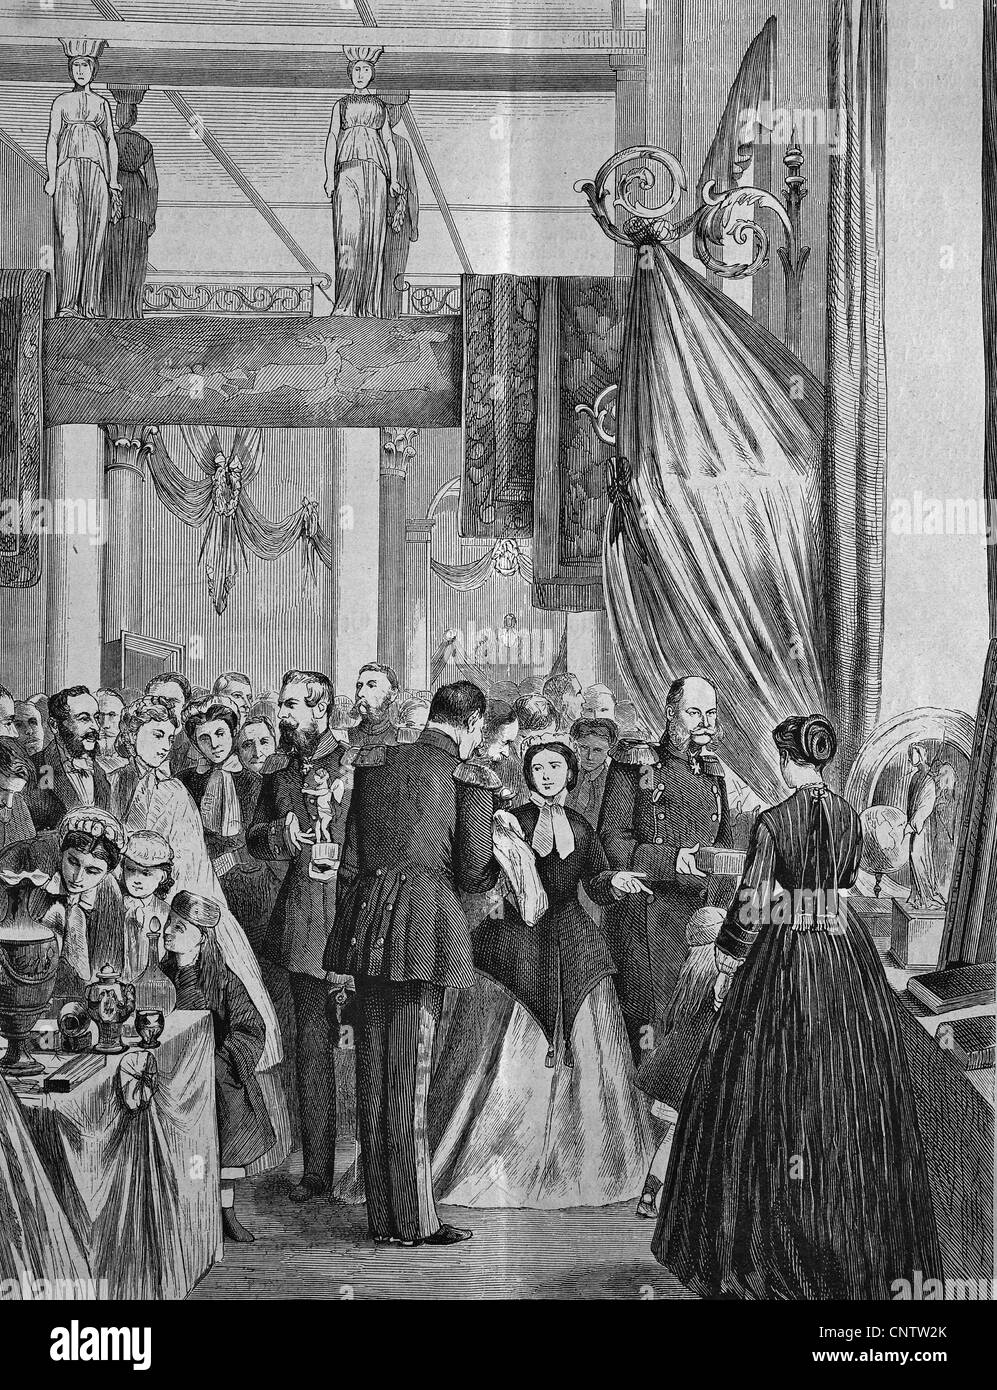 Victoria Exhibition in Berlin, Germany, historical engraving, 1869 - Stock Image